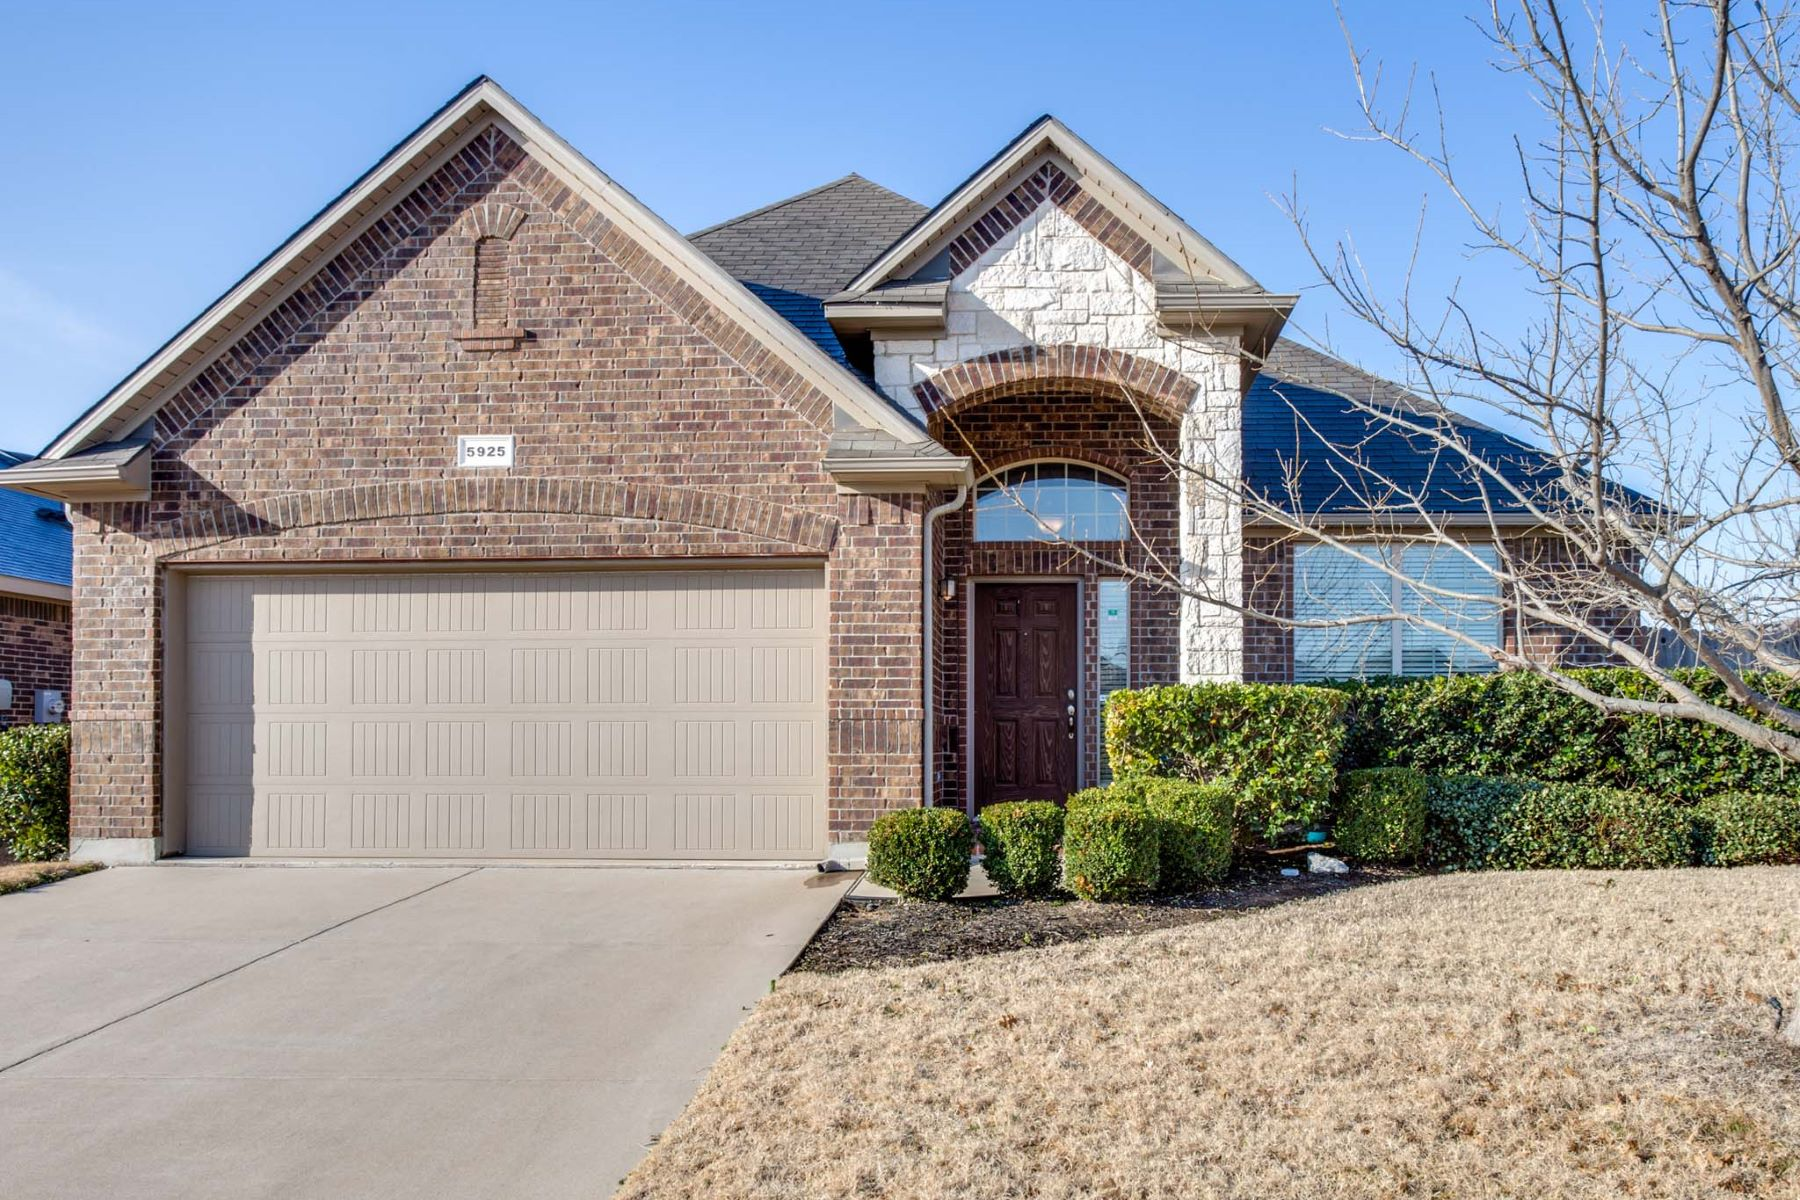 Single Family Home for Sale at 5925 Paluxy Sands Tr. 5925 Paluxy Sands Trail, Fort Worth, Texas, 76179 United States